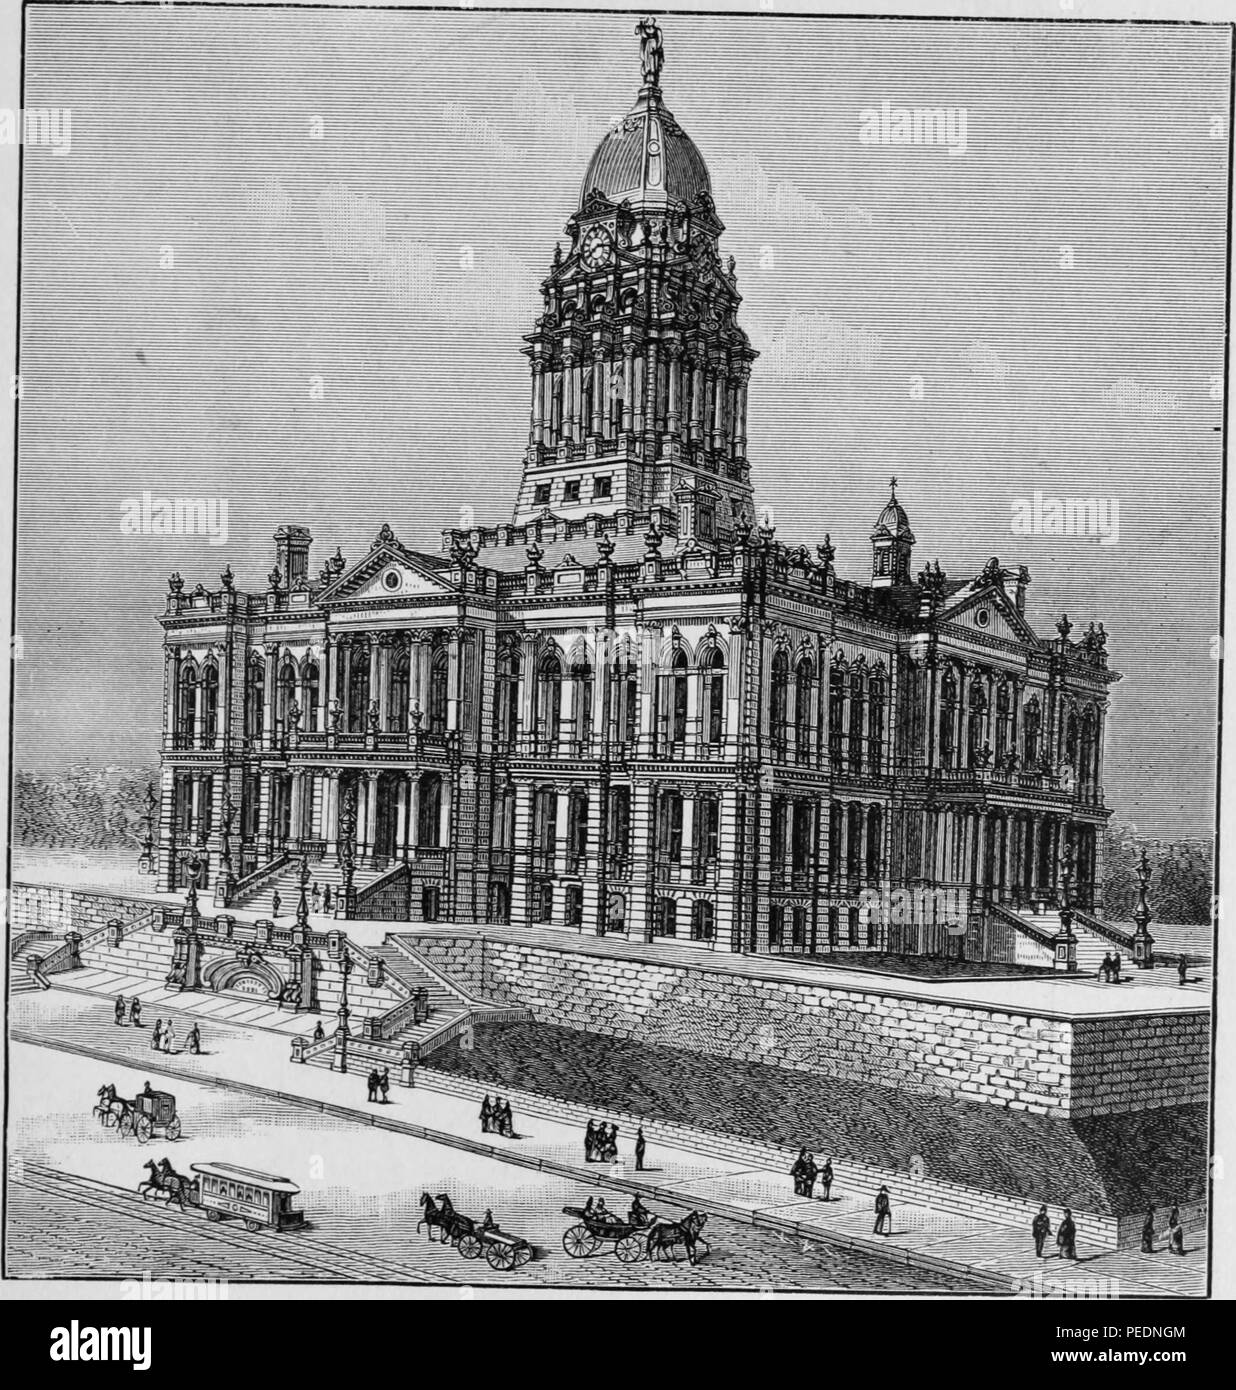 Black and white print illustrating an angled view of the Douglas County Courthouse, a multi-level French Renaissance Revival structure with a tall dome and elegant staircase, located in Omaha, Nebraska, 1887. Courtesy Internet Archive. () - Stock Image